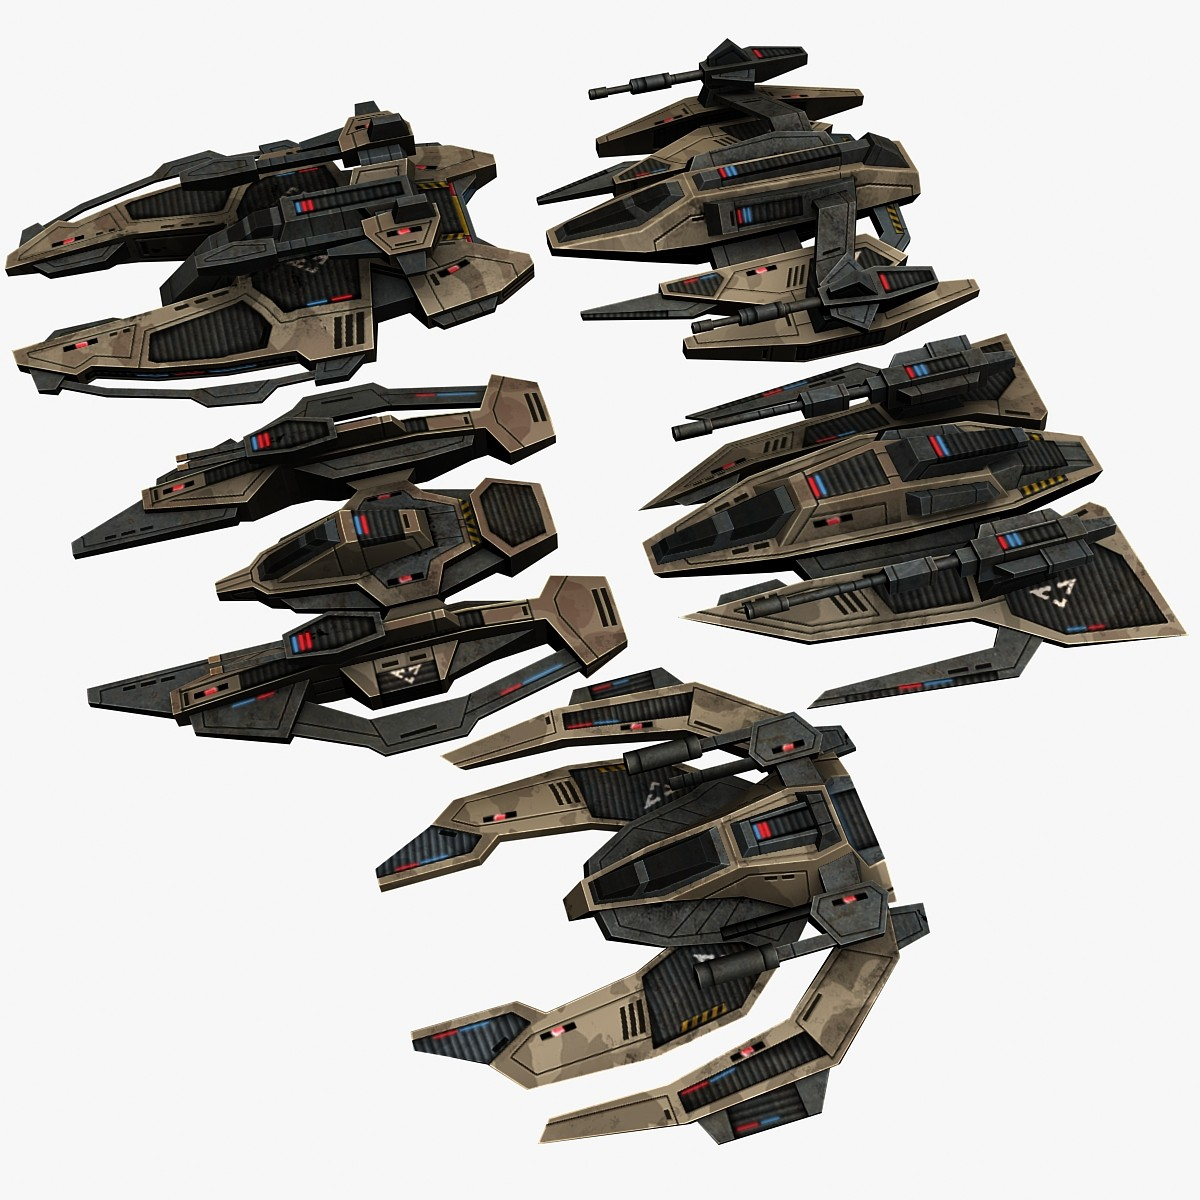 3d model of 5 military space